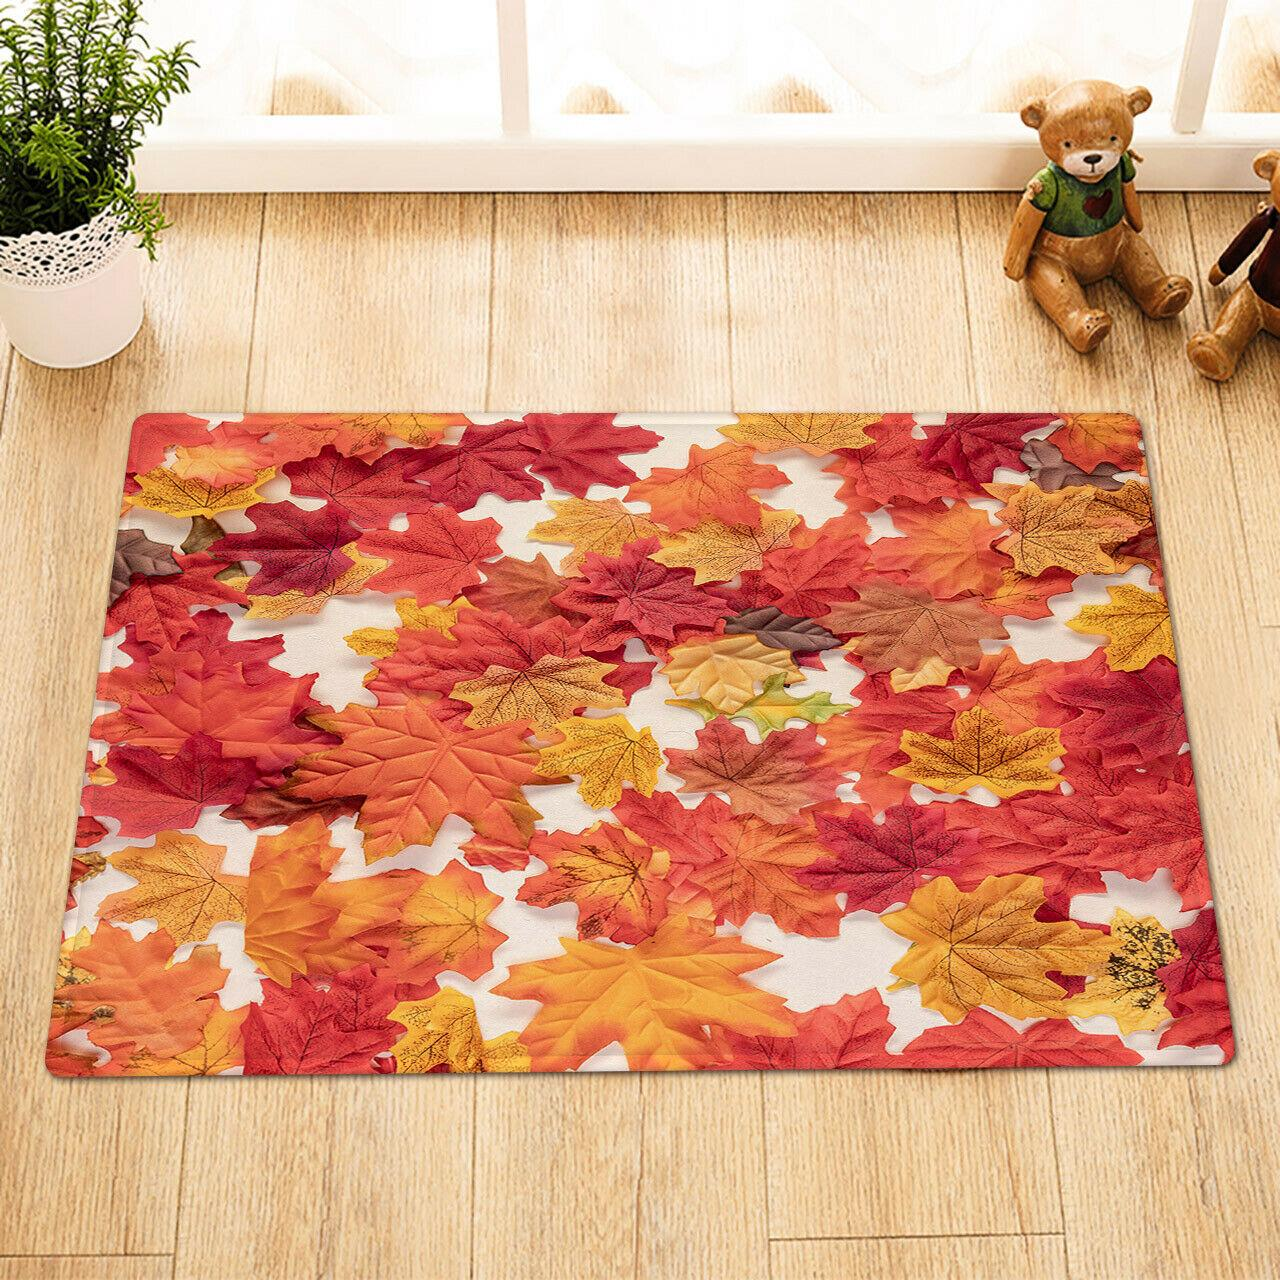 Autumn Maple painting Bathroom Rug Non-Slip Floor Indoor Front Door Mat 16x24/""